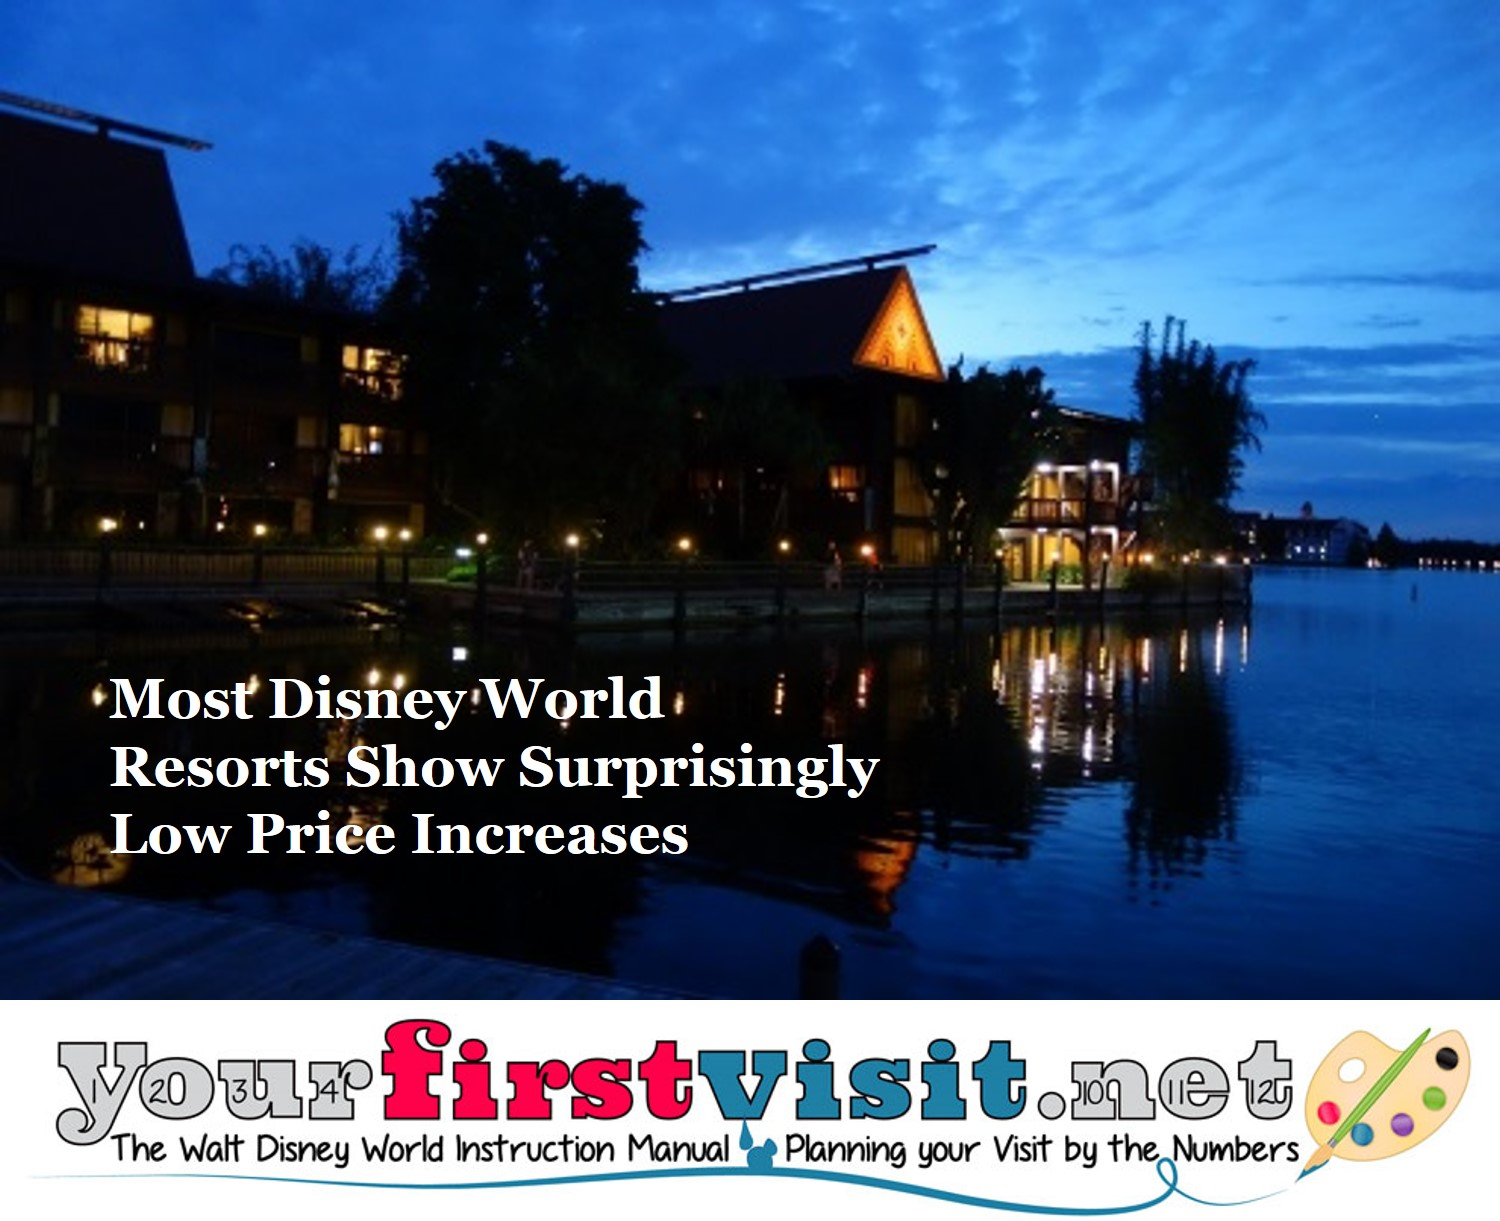 Some Shockingly Low 2017 Price Increases at Most Disney World Resorts from yourfirstvisit.net